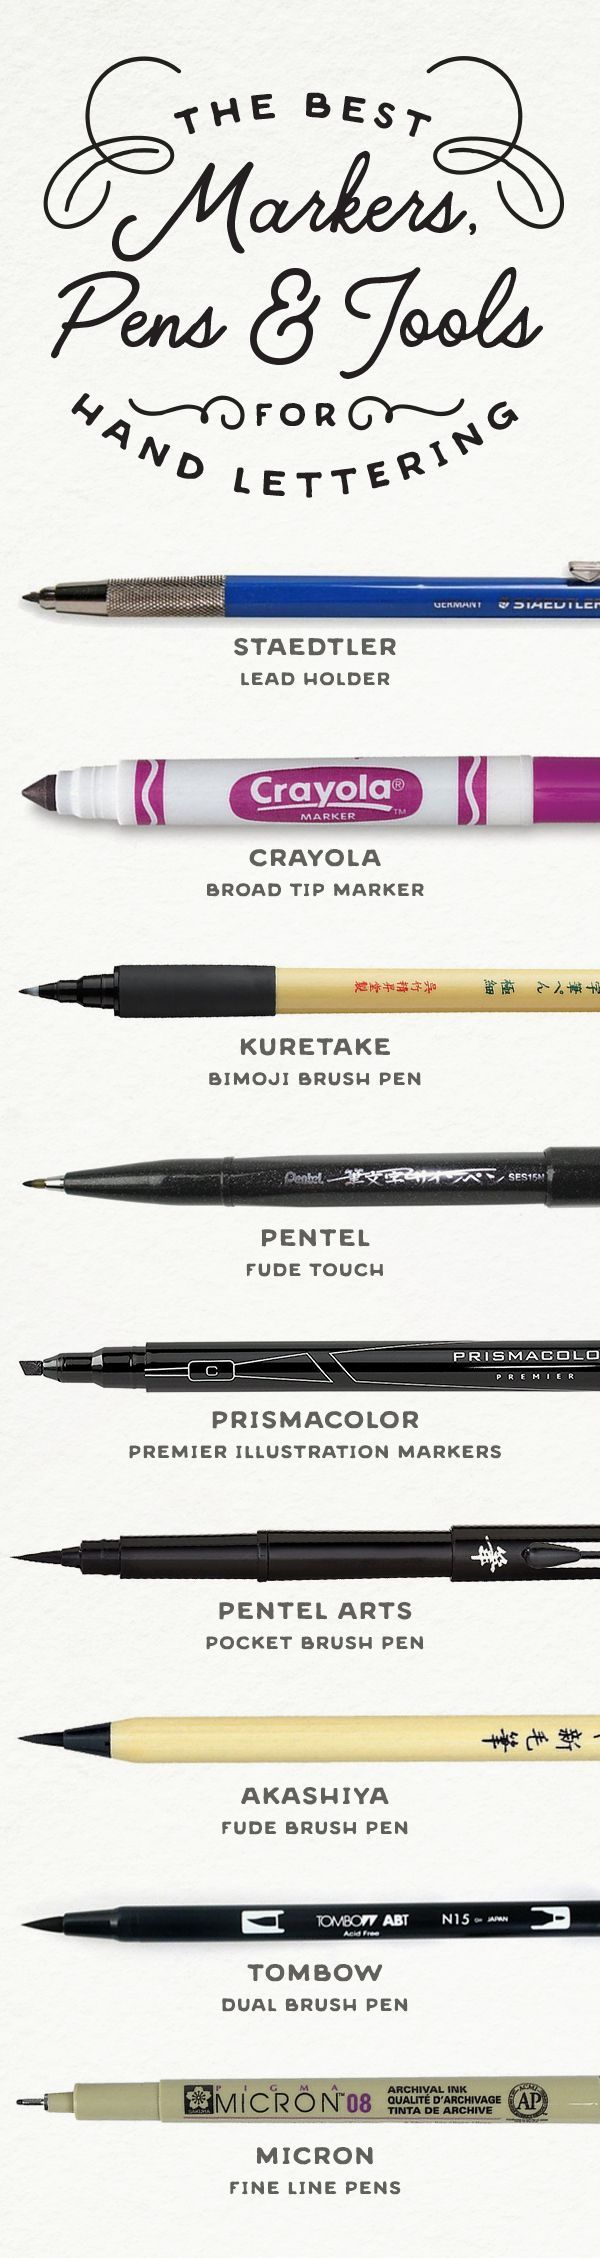 Using the right tools can help make hand lettering a lot easier. These are the best markers, pens, and tools for hand lettering